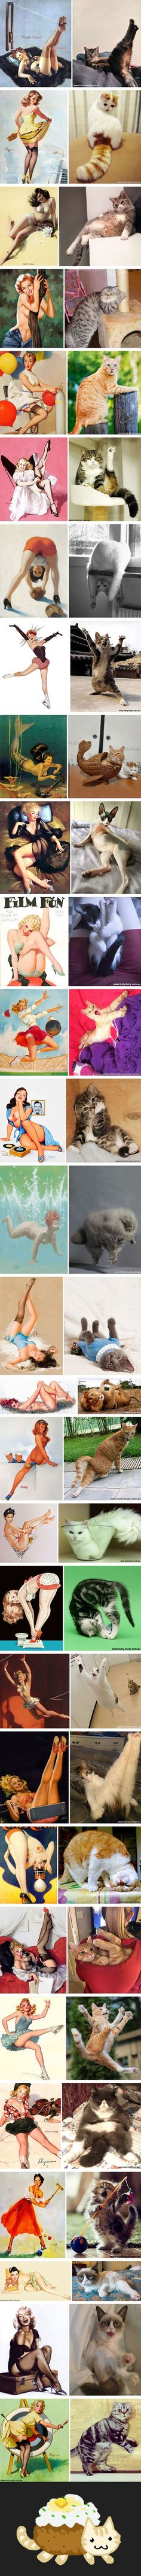 29 Cats Posing Like Pin Up Girls and it is so purrfect Funny Cat Photos, Funny Animal Pictures, Best Funny Pictures, Funny Cats, Funny Animals, Cute Animals, Pin Up Girls, Cat Anime, Cat Icon